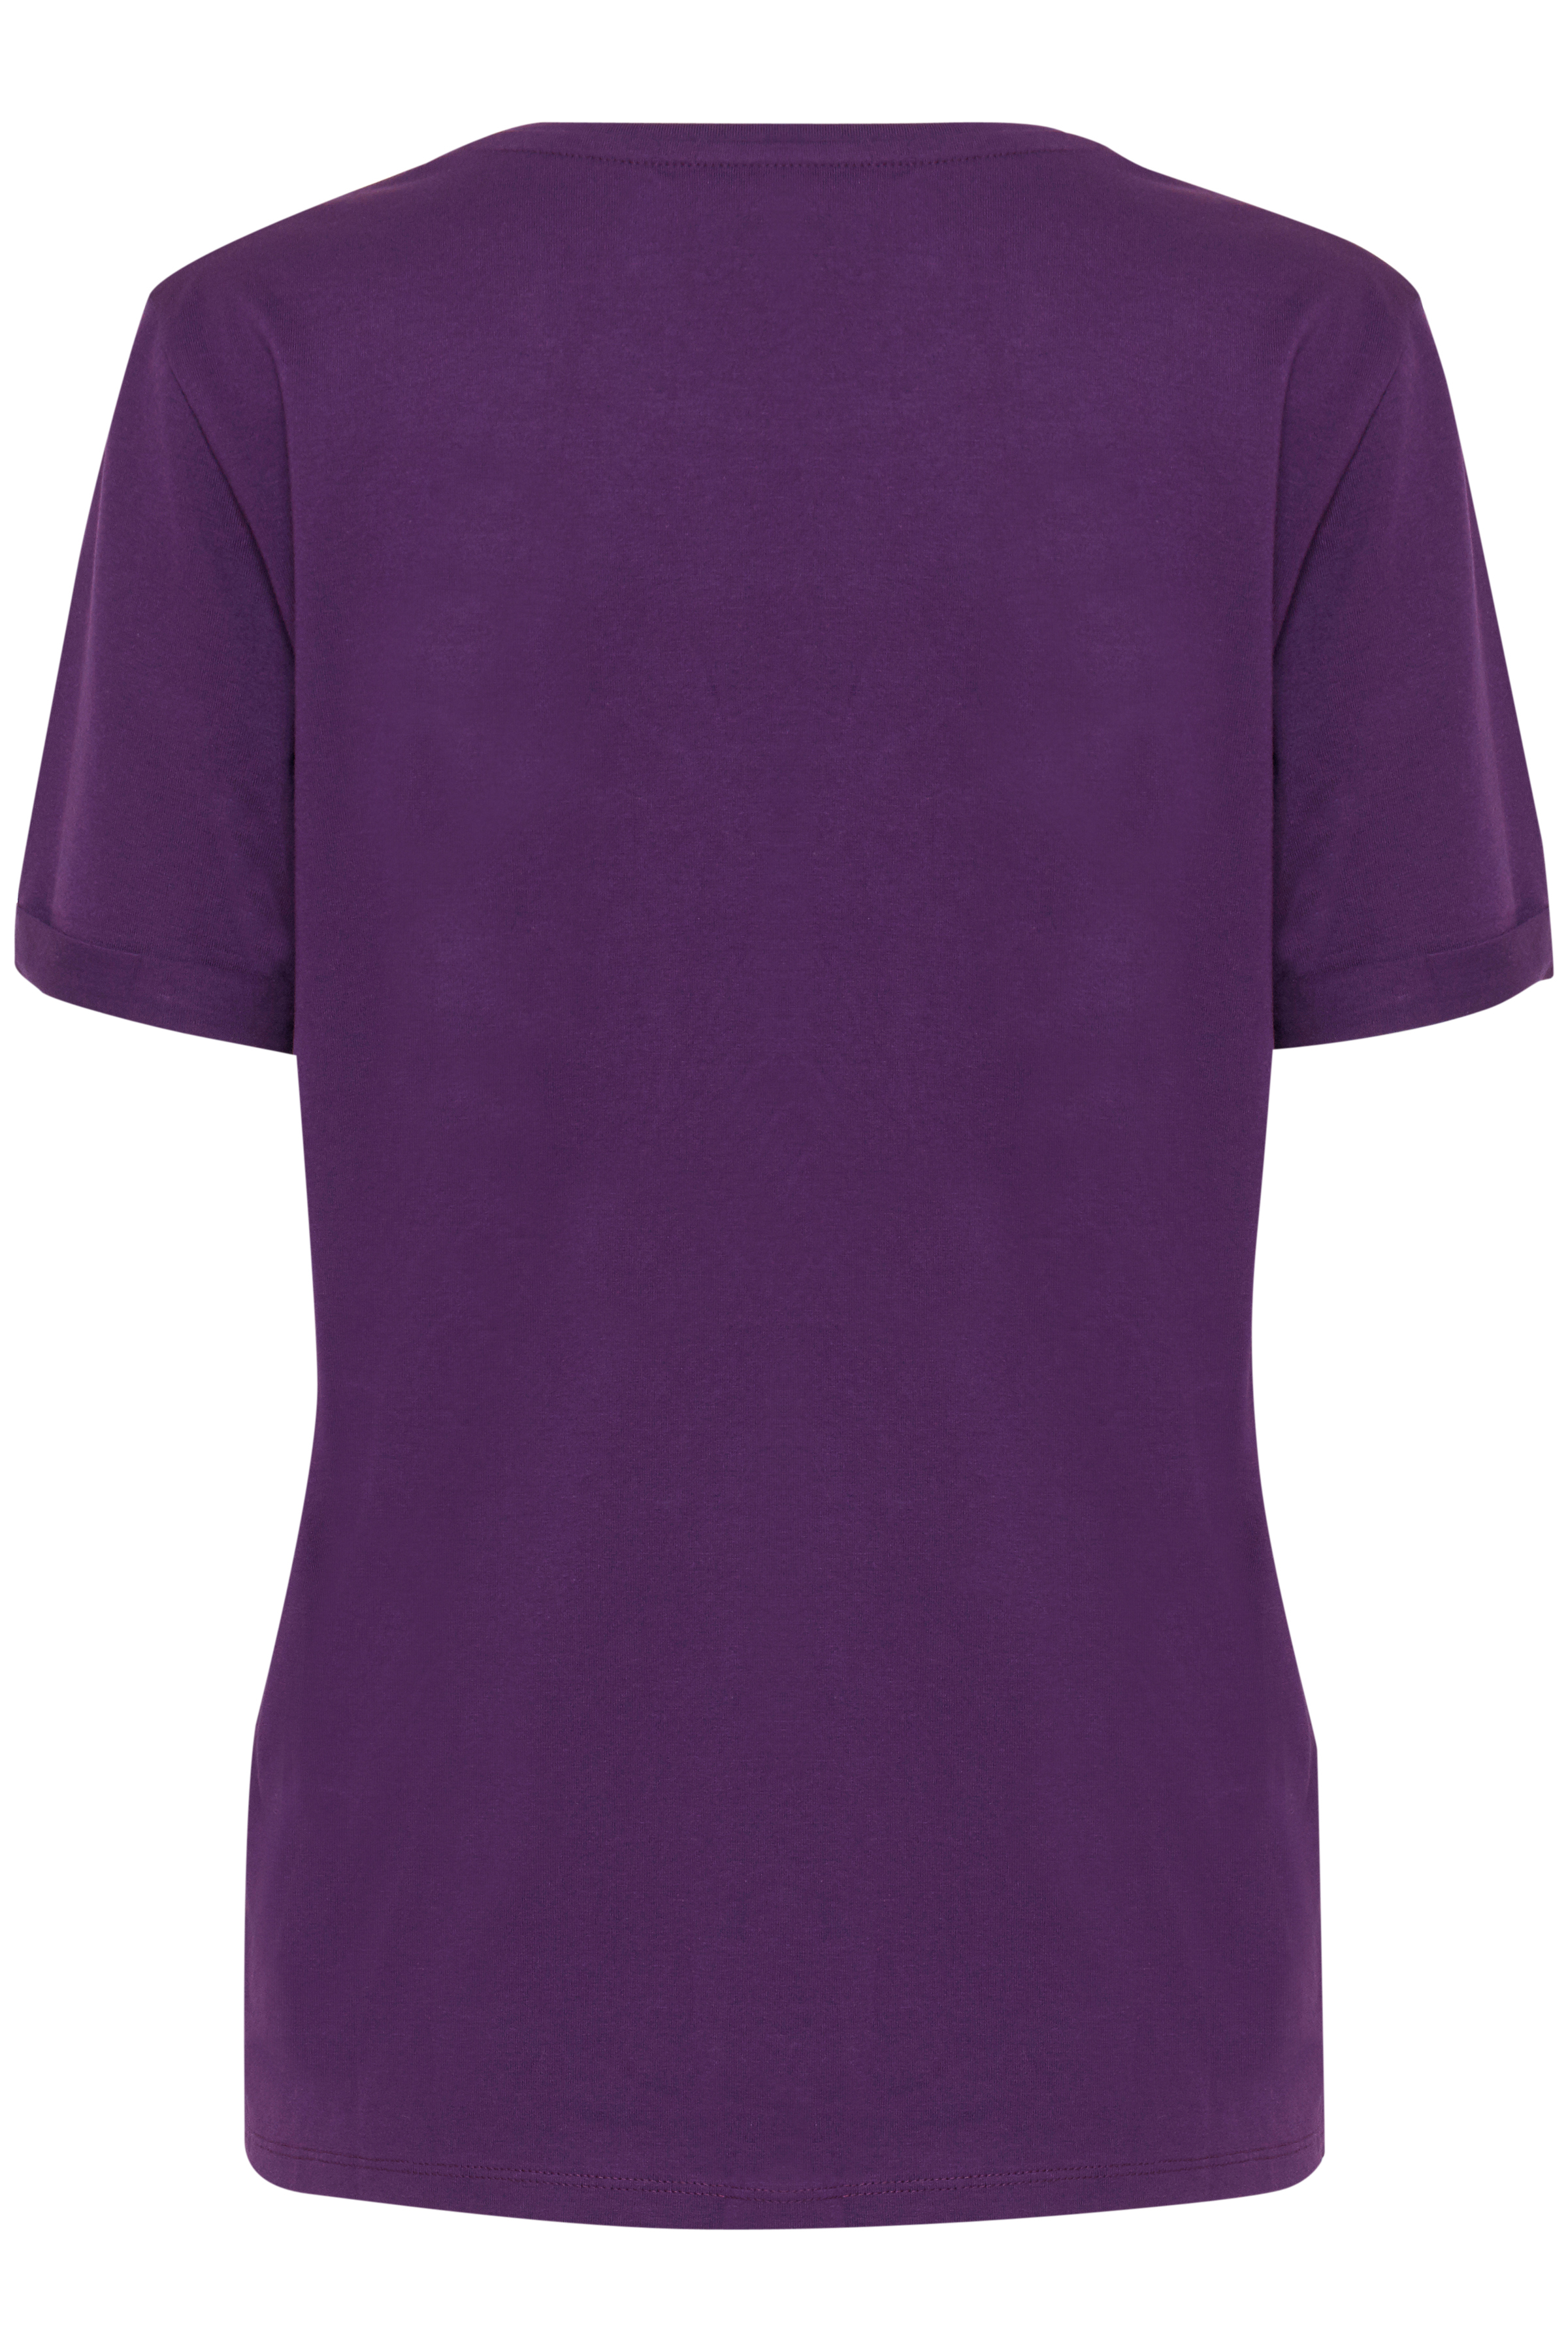 Imperial Purple T-shirt fra b.young – Køb Imperial Purple T-shirt fra str. S-XXL her